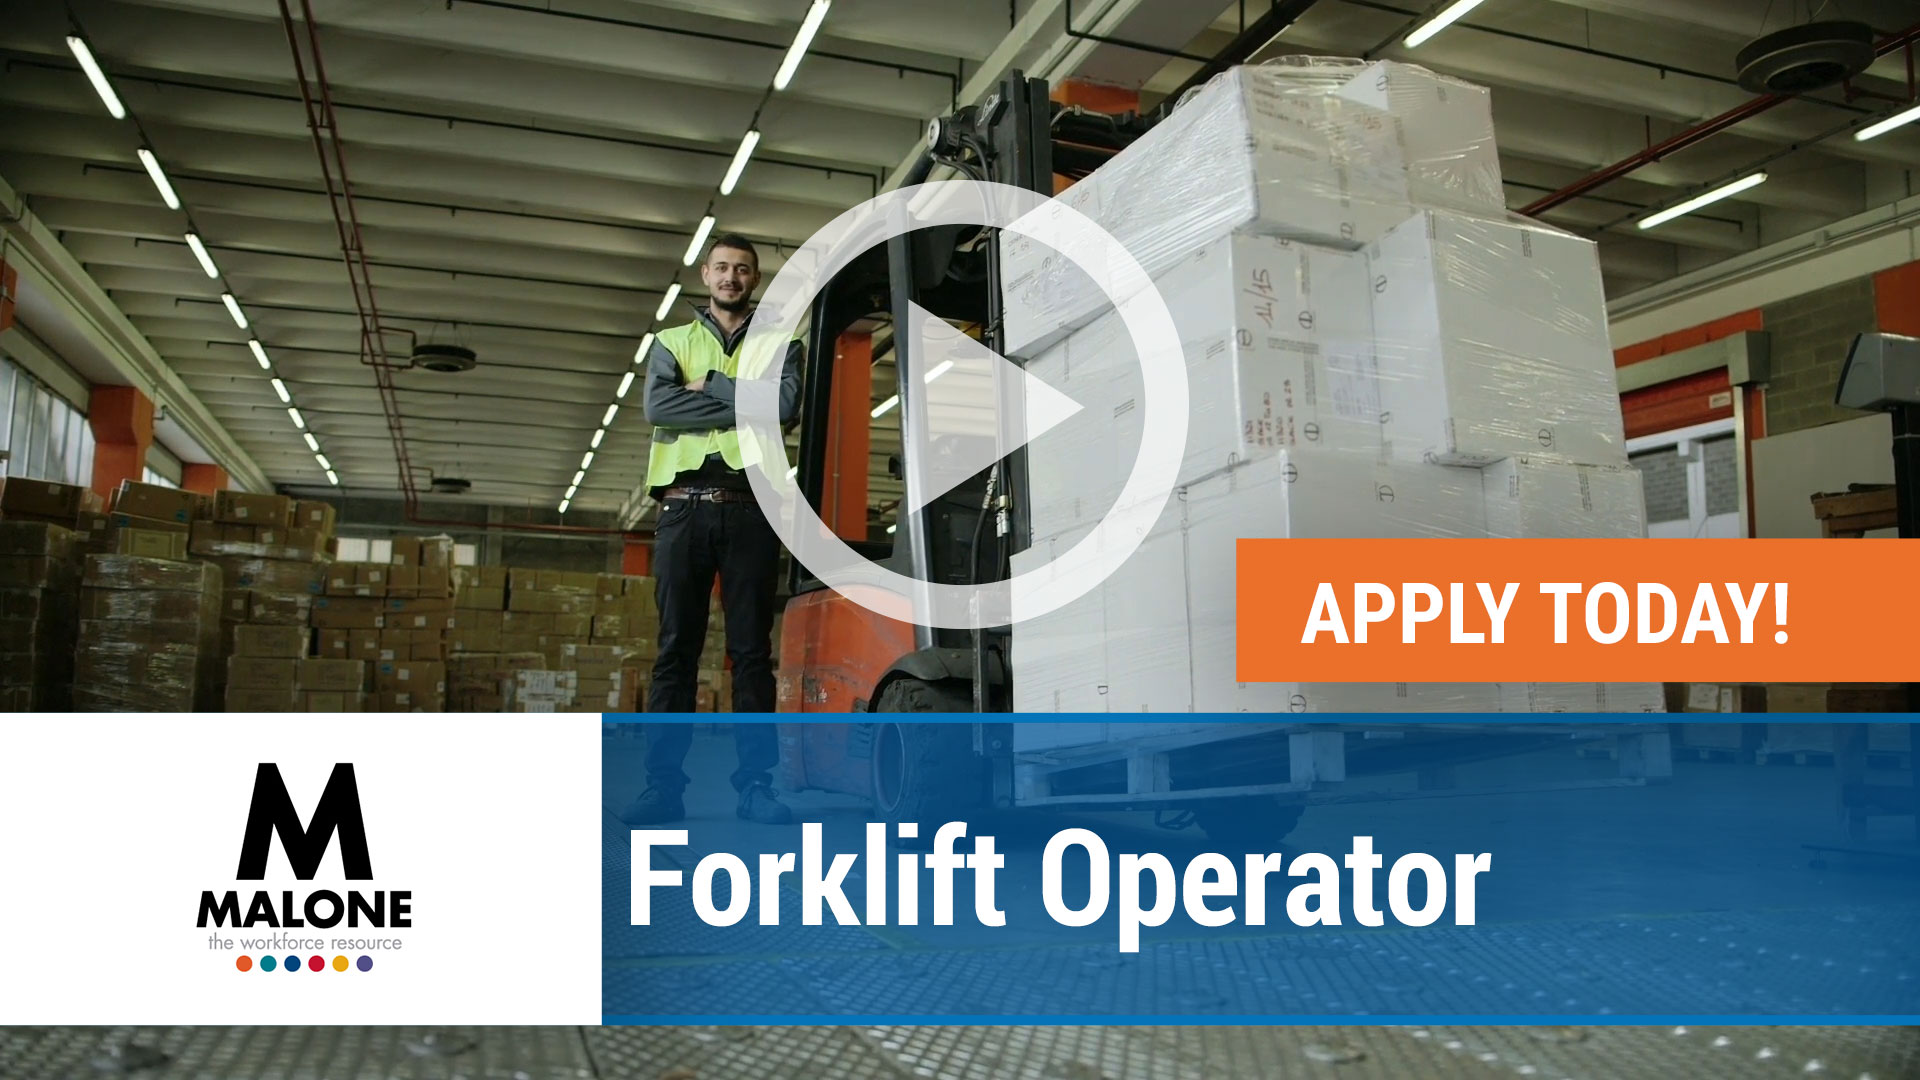 Watch our careers video for available job opening Forklift Operator in Montgomery, Alabama